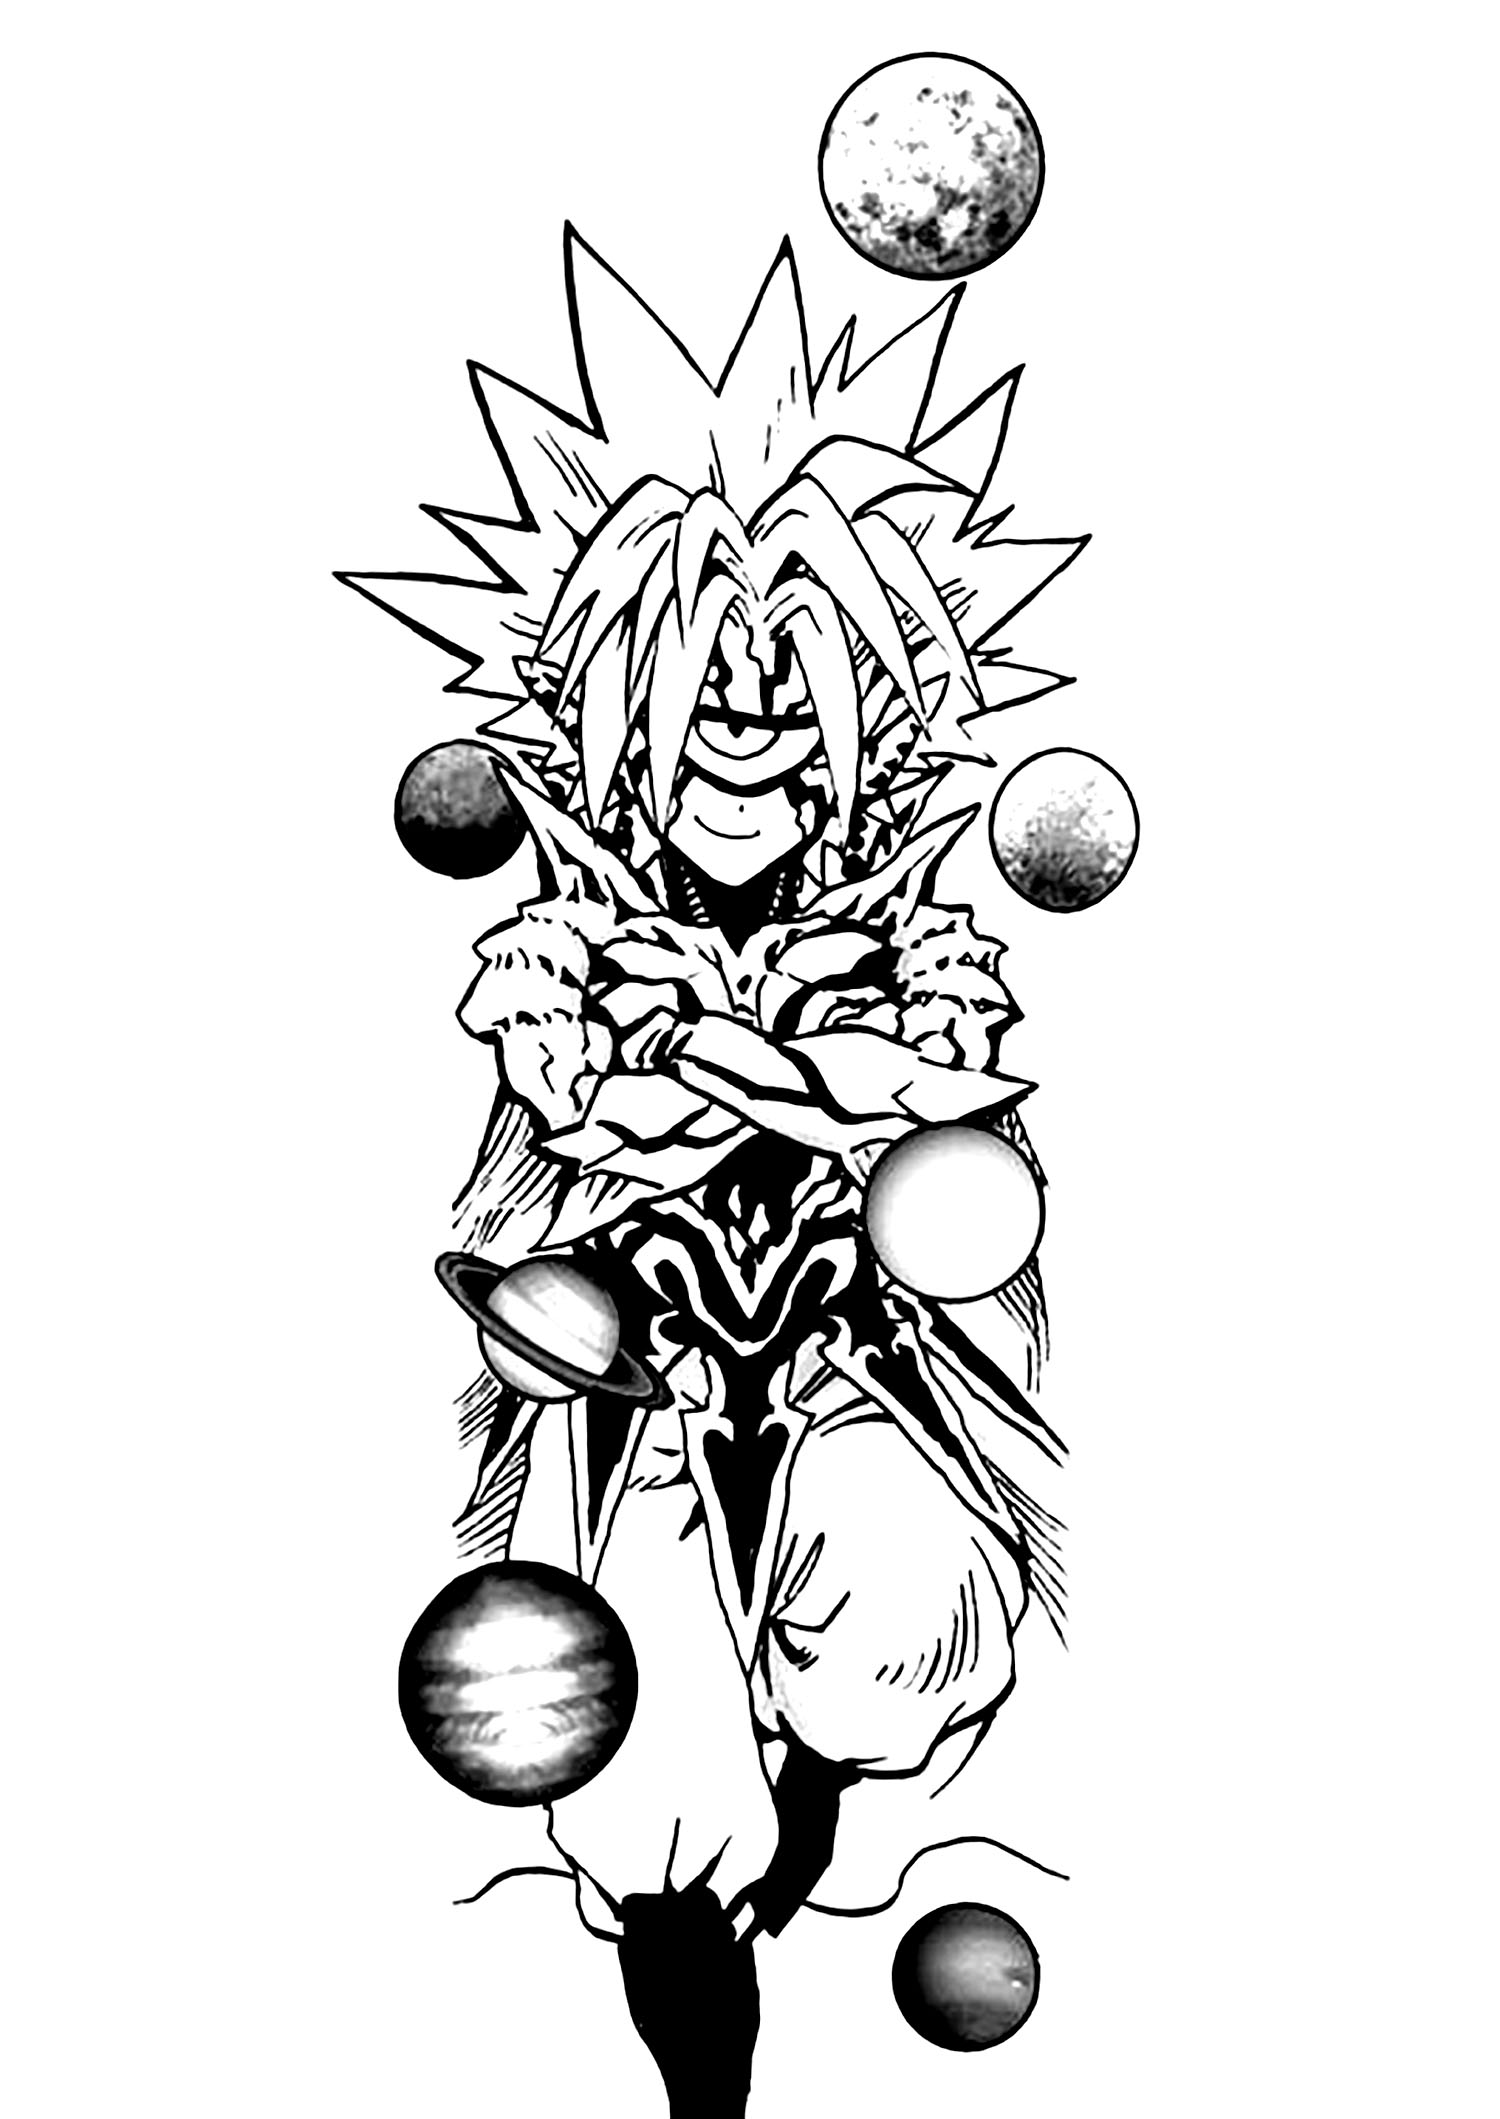 Funny One Punch Man coloring page for children